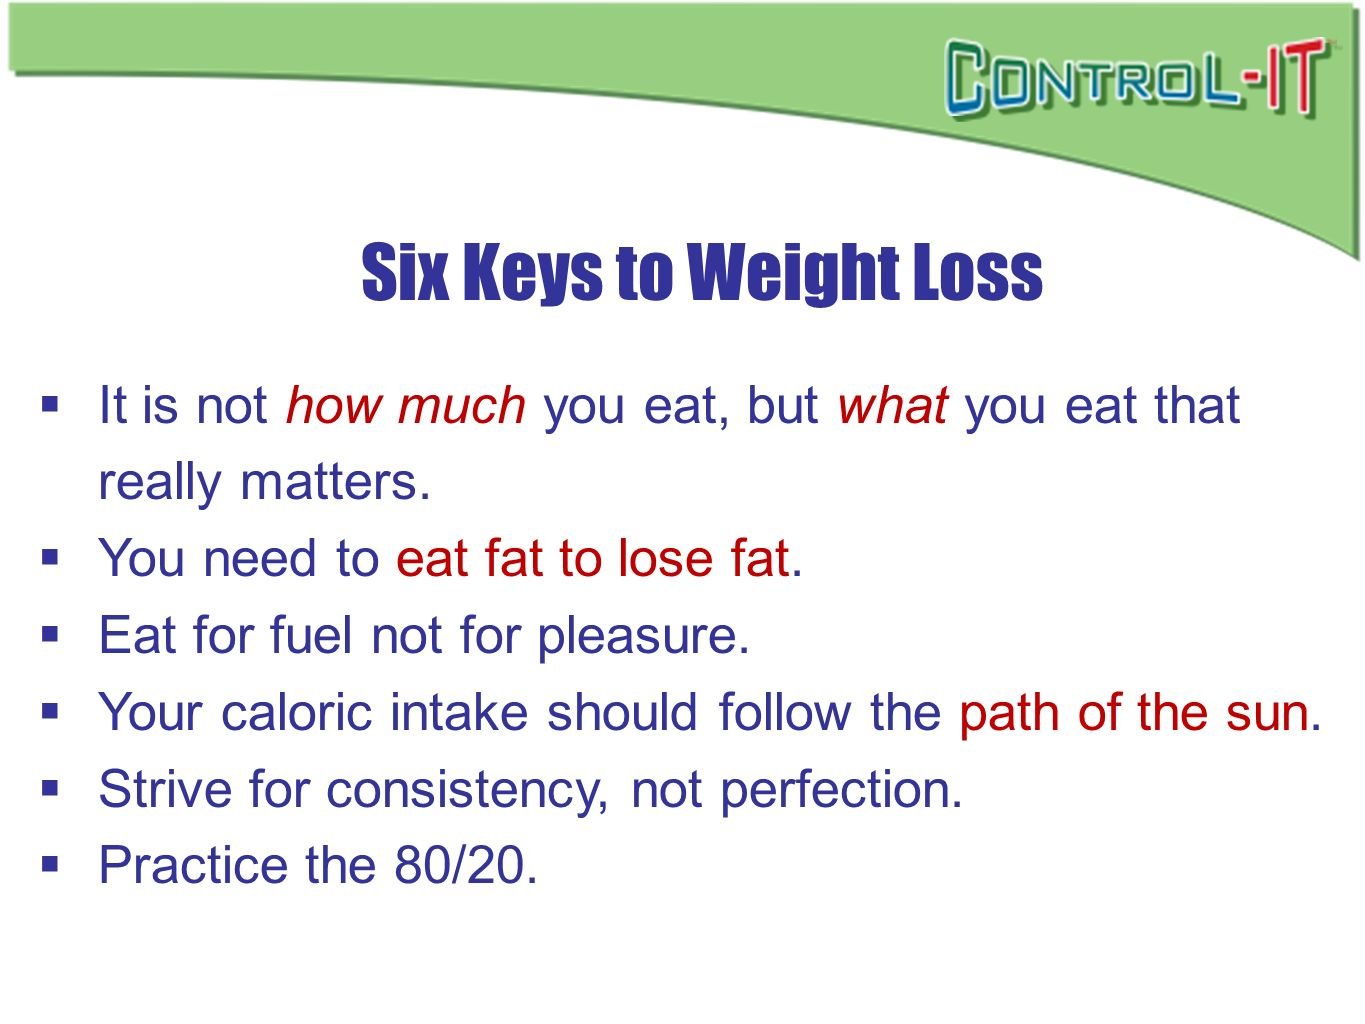 Six Keys to Weight LossIt is not how much you eat, but what you eat that really matters. You need to eat fat to lose fat.